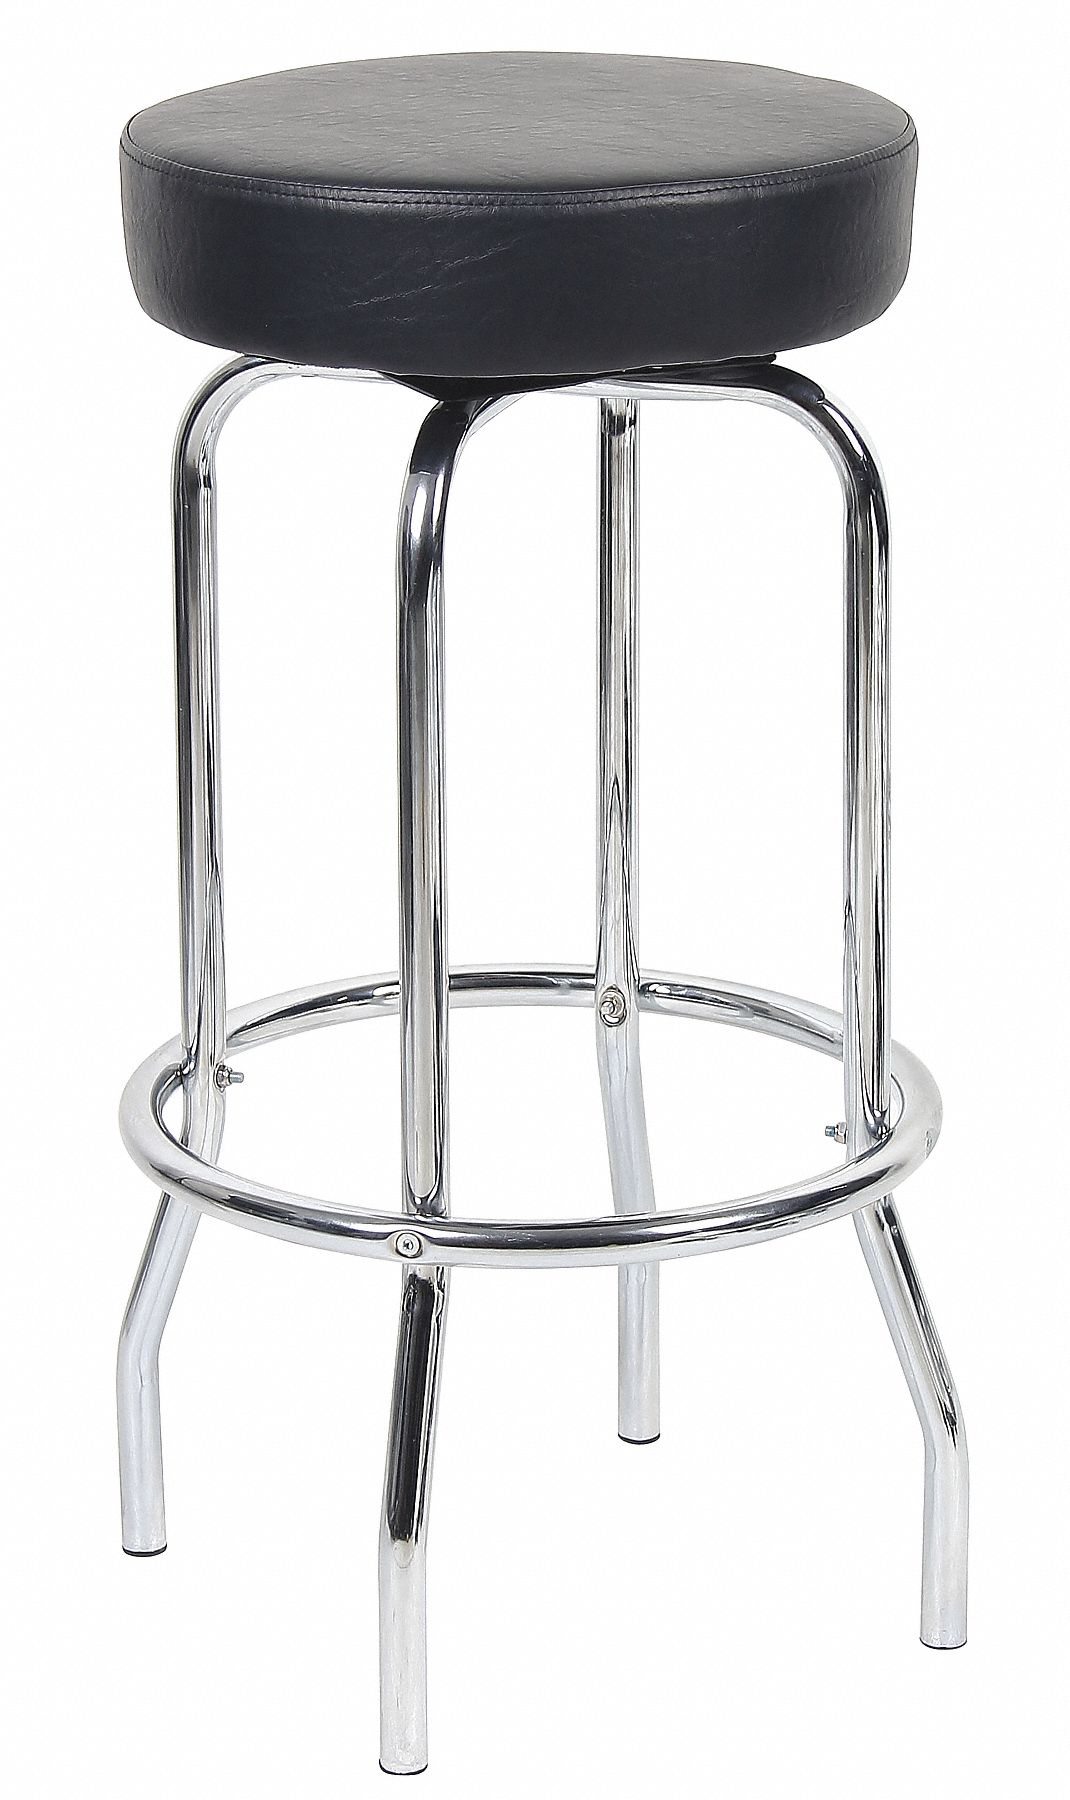 Fantastic Work Bench Stool With 29 Seat Height Range And 275 Lb Weight Capacity Chrome Base Black Seat Evergreenethics Interior Chair Design Evergreenethicsorg